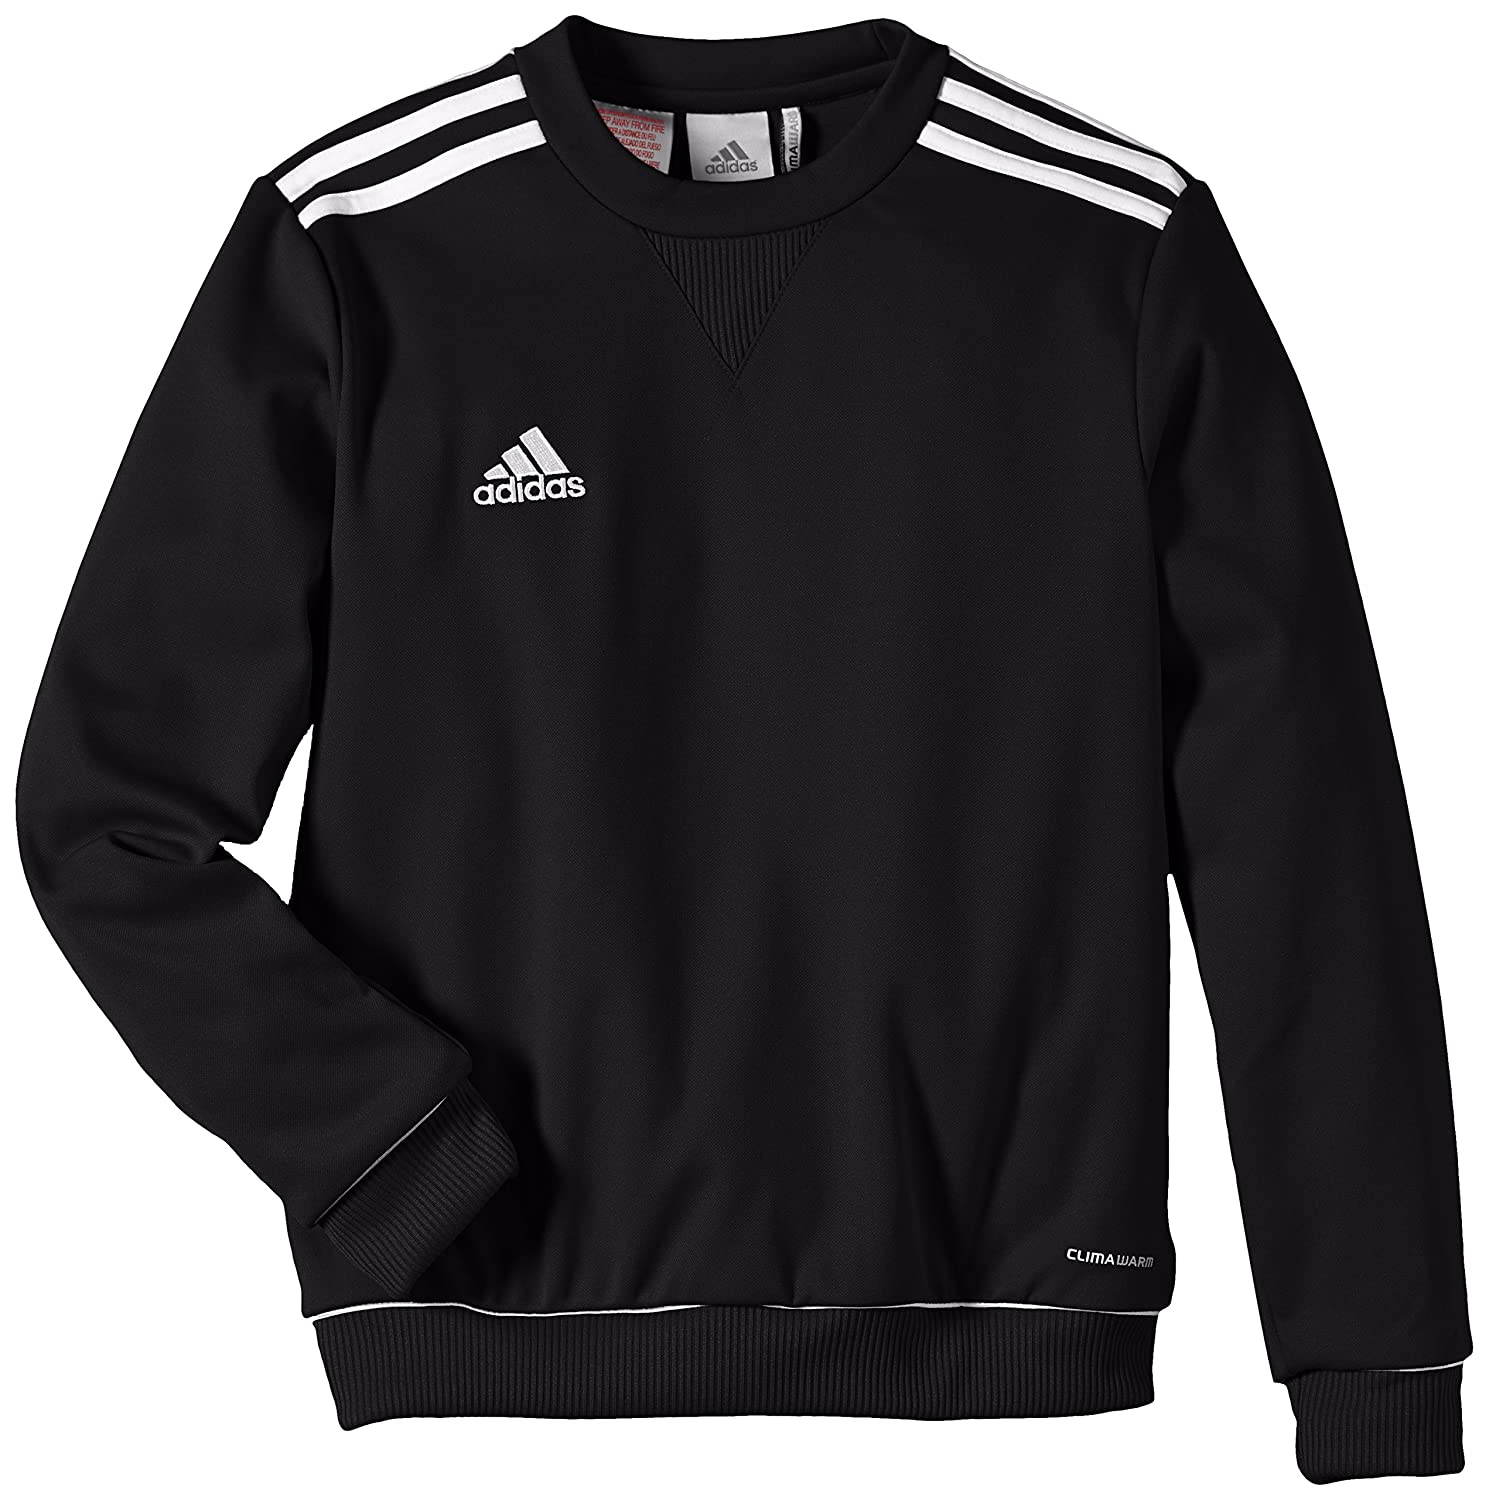 adidas Kinder Bekleidung Teamline Core 11 Sweat Top, Black/White, 140,  V39398: Amazon.de: Sport & Freizeit